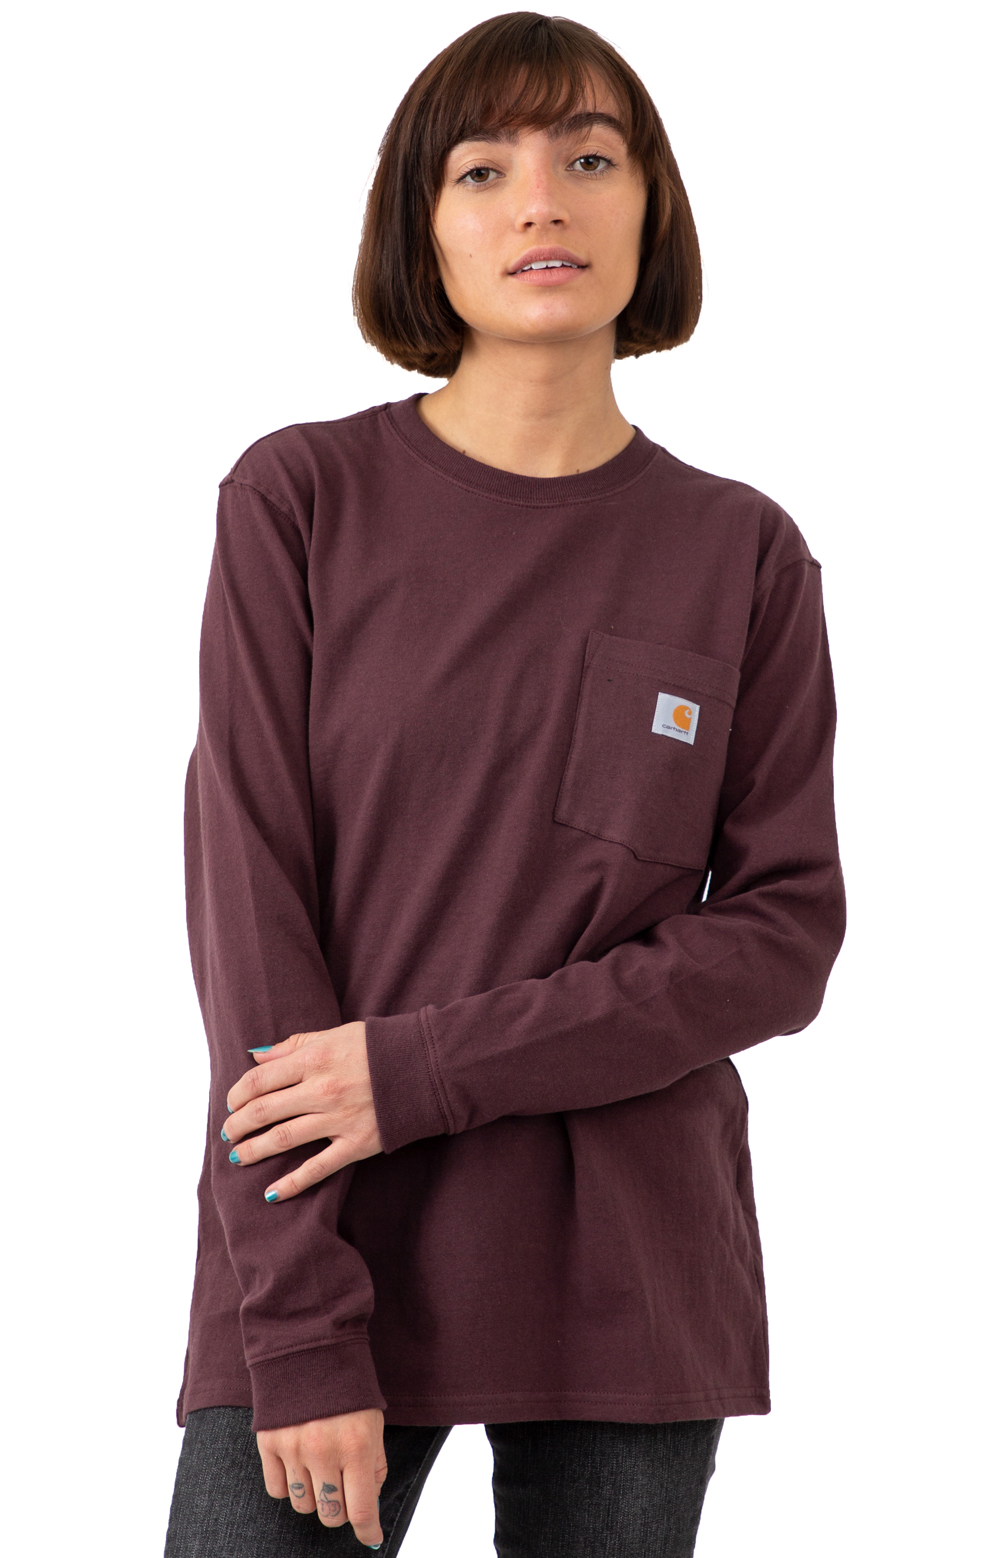 (103244) WK126 Workwear Pocket L/S Shirt - Deep Wine